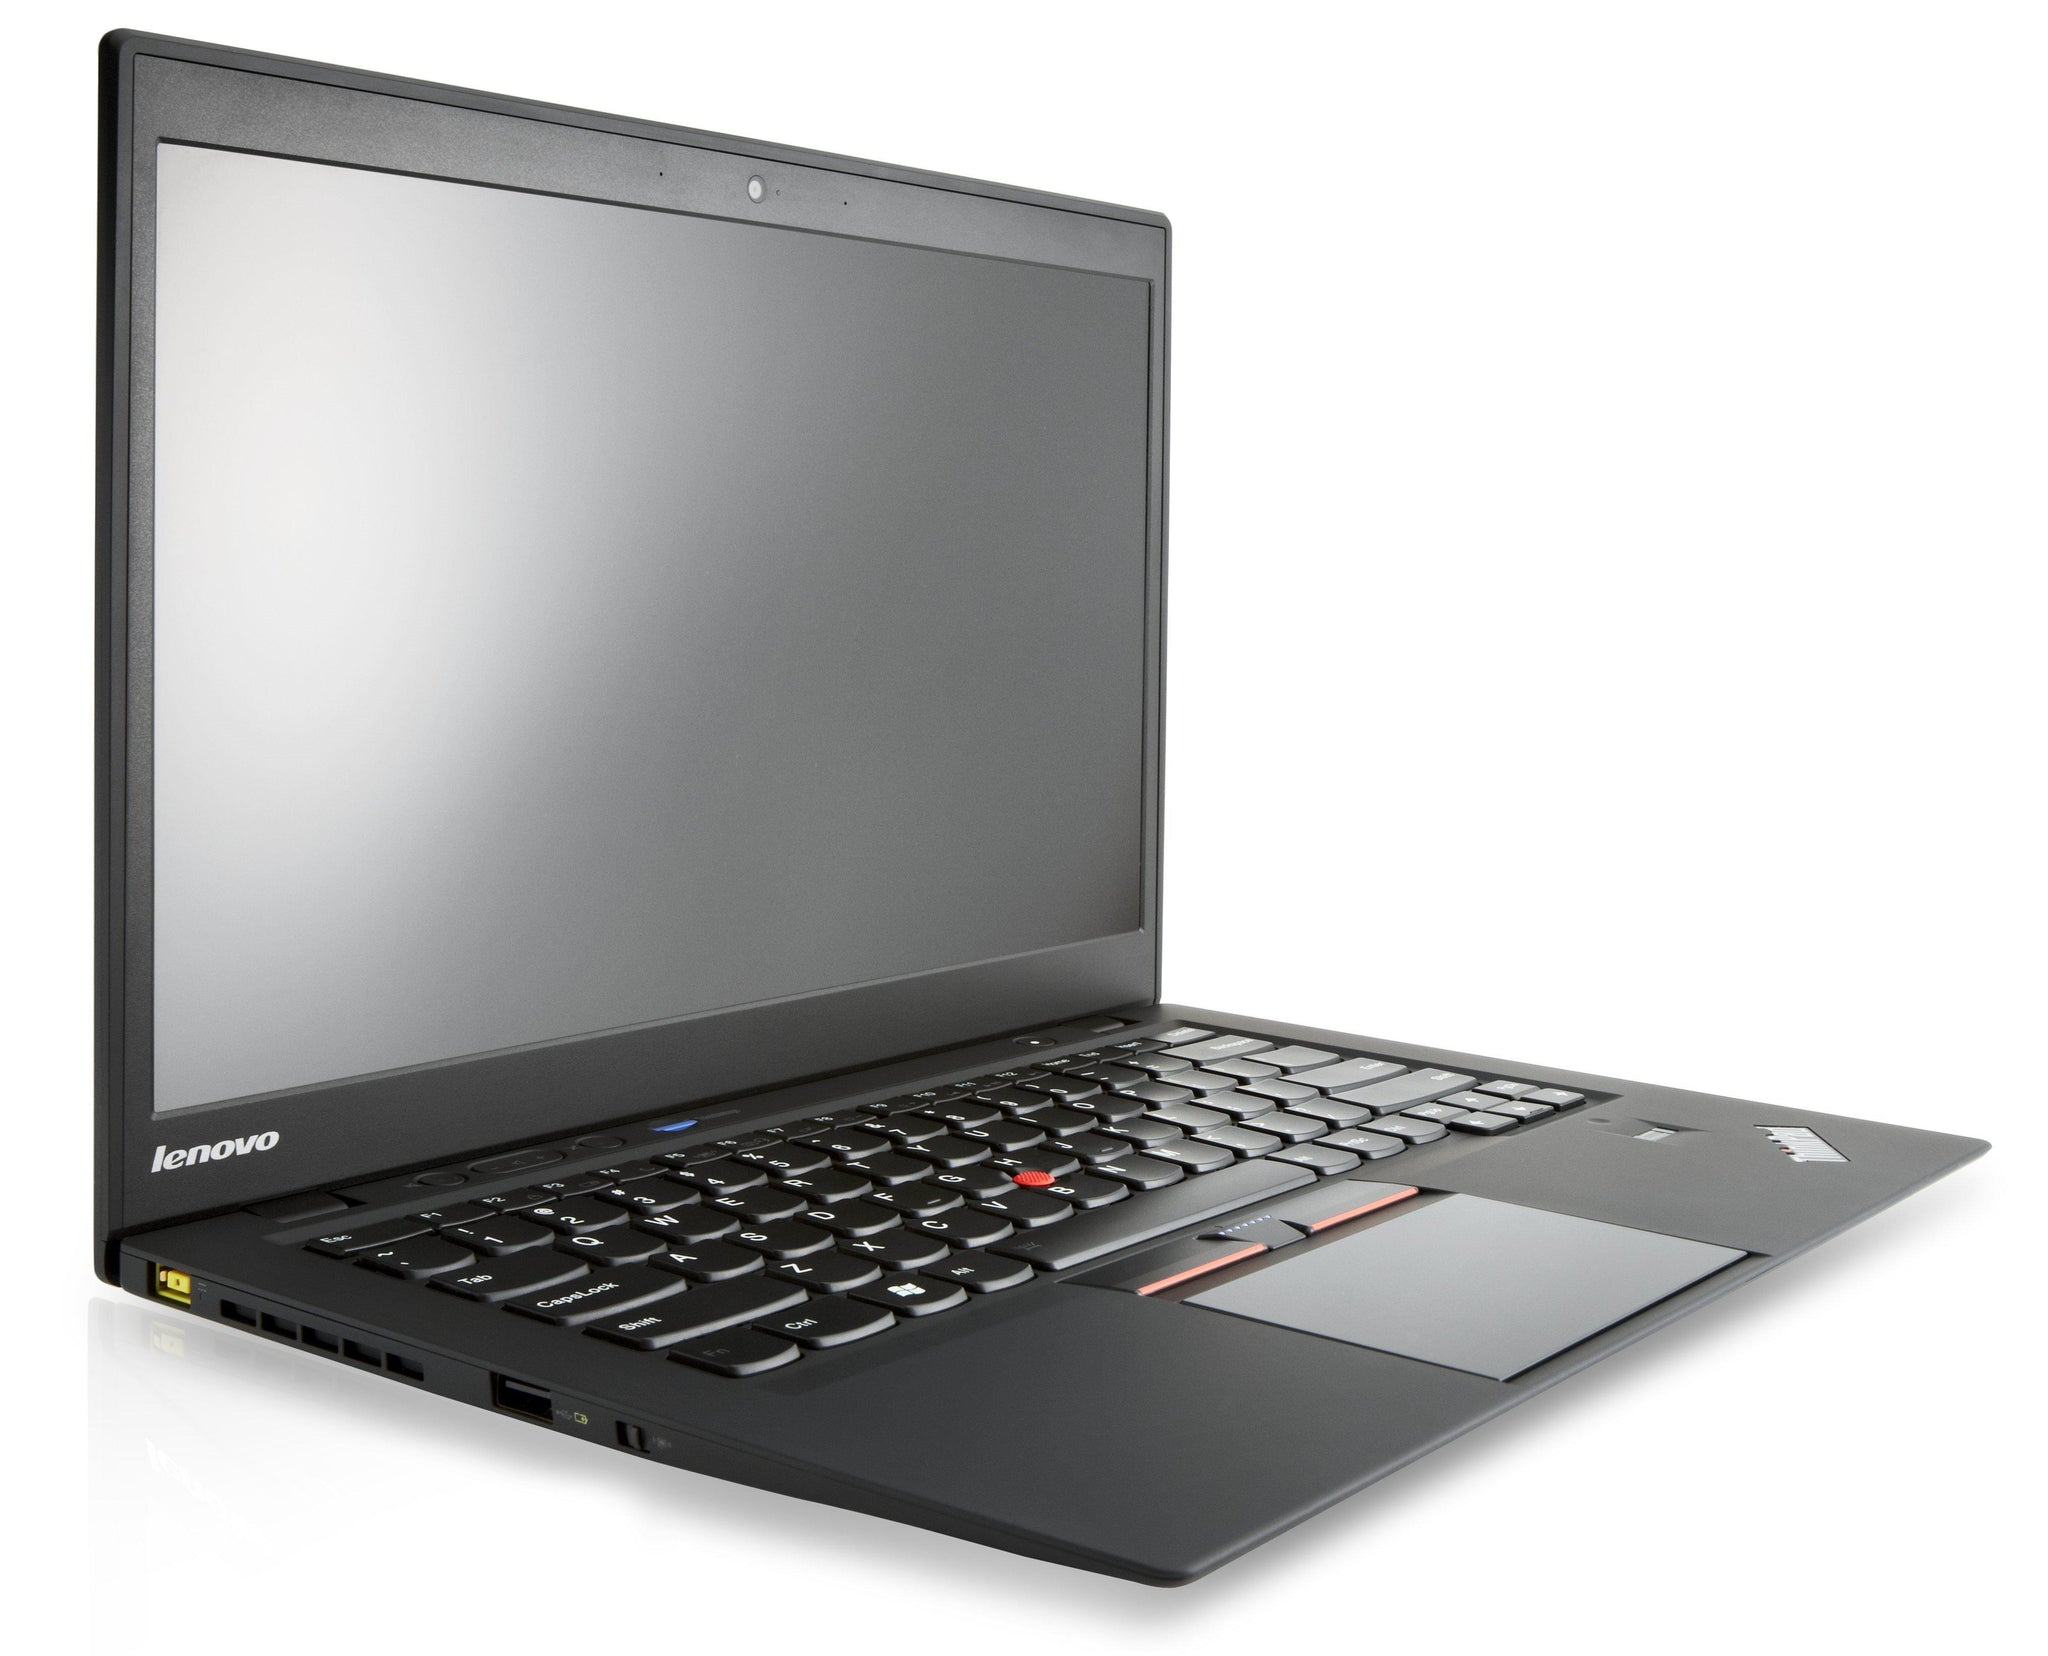 "Lenovo Thinkpad X1 Carbon 3rd Gen 14"" Laptop Core i5-5300U 2.3Ghz, 8GB 256GB, Refurbished"